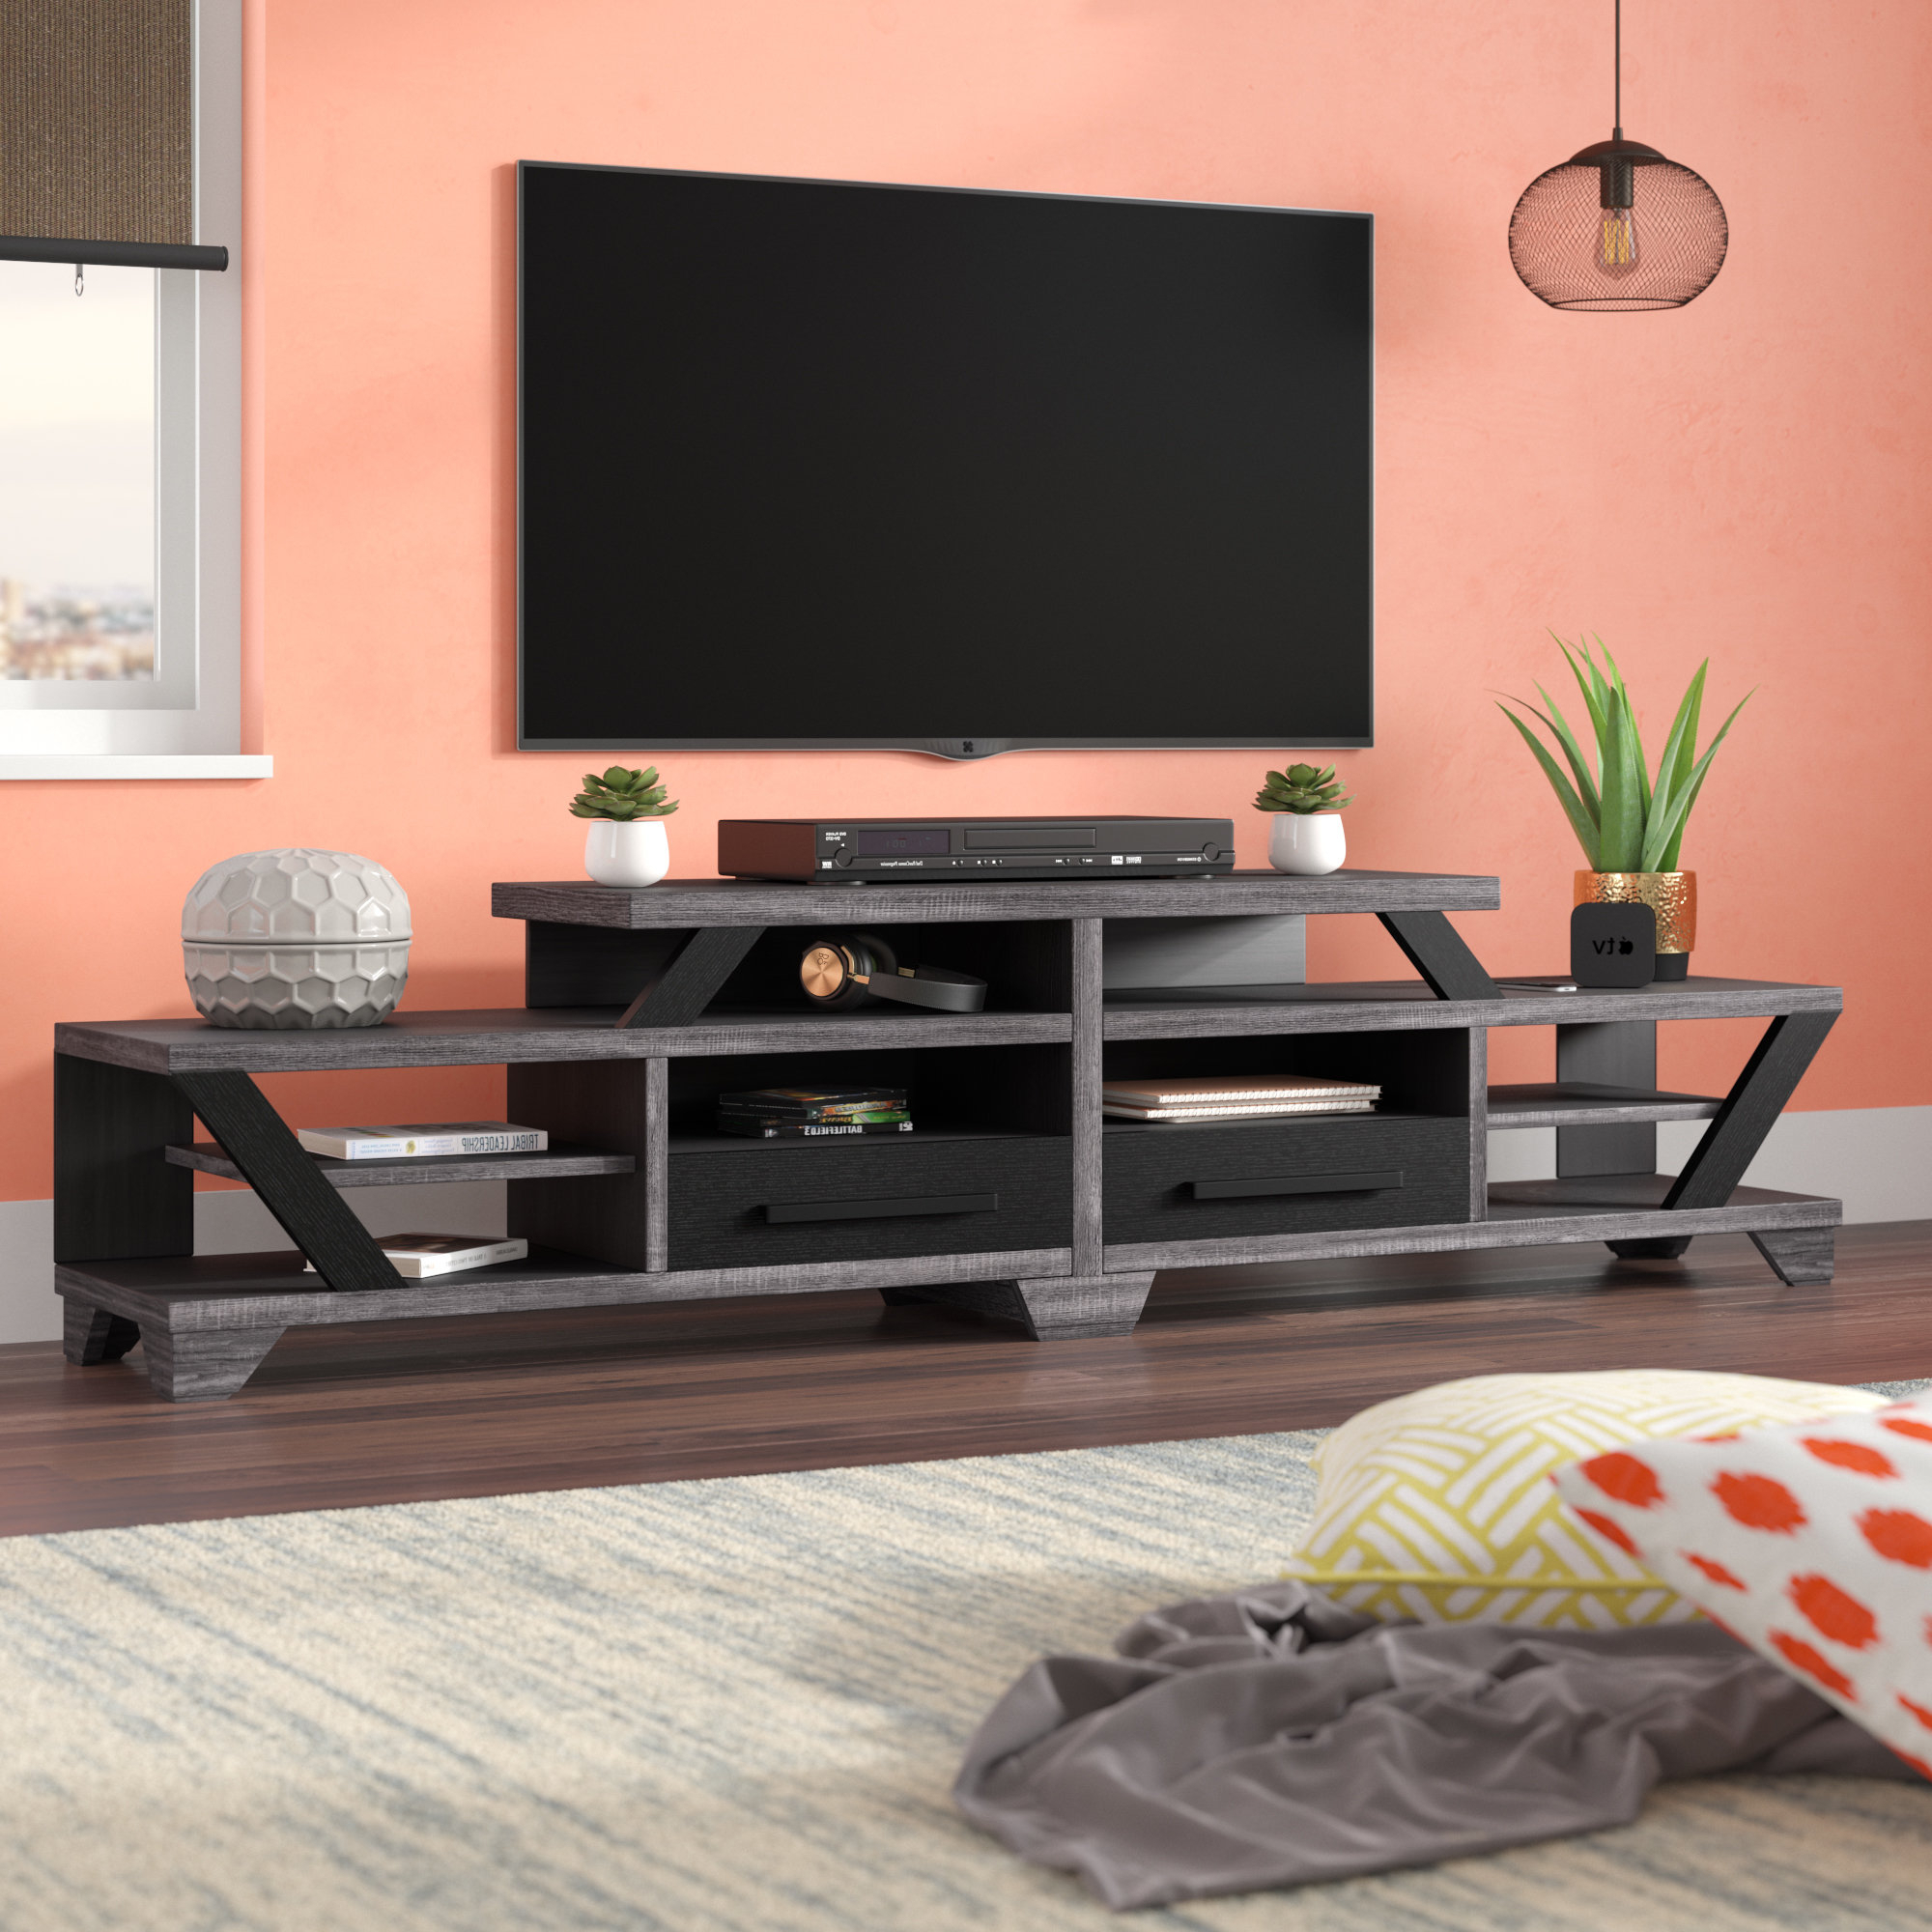 Brayden Studio Brosnan Contemporary Tv Stand For Tvs Up To 80 Throughout 2018 Contemporary Tv Cabinets For Flat Screens (View 7 of 20)